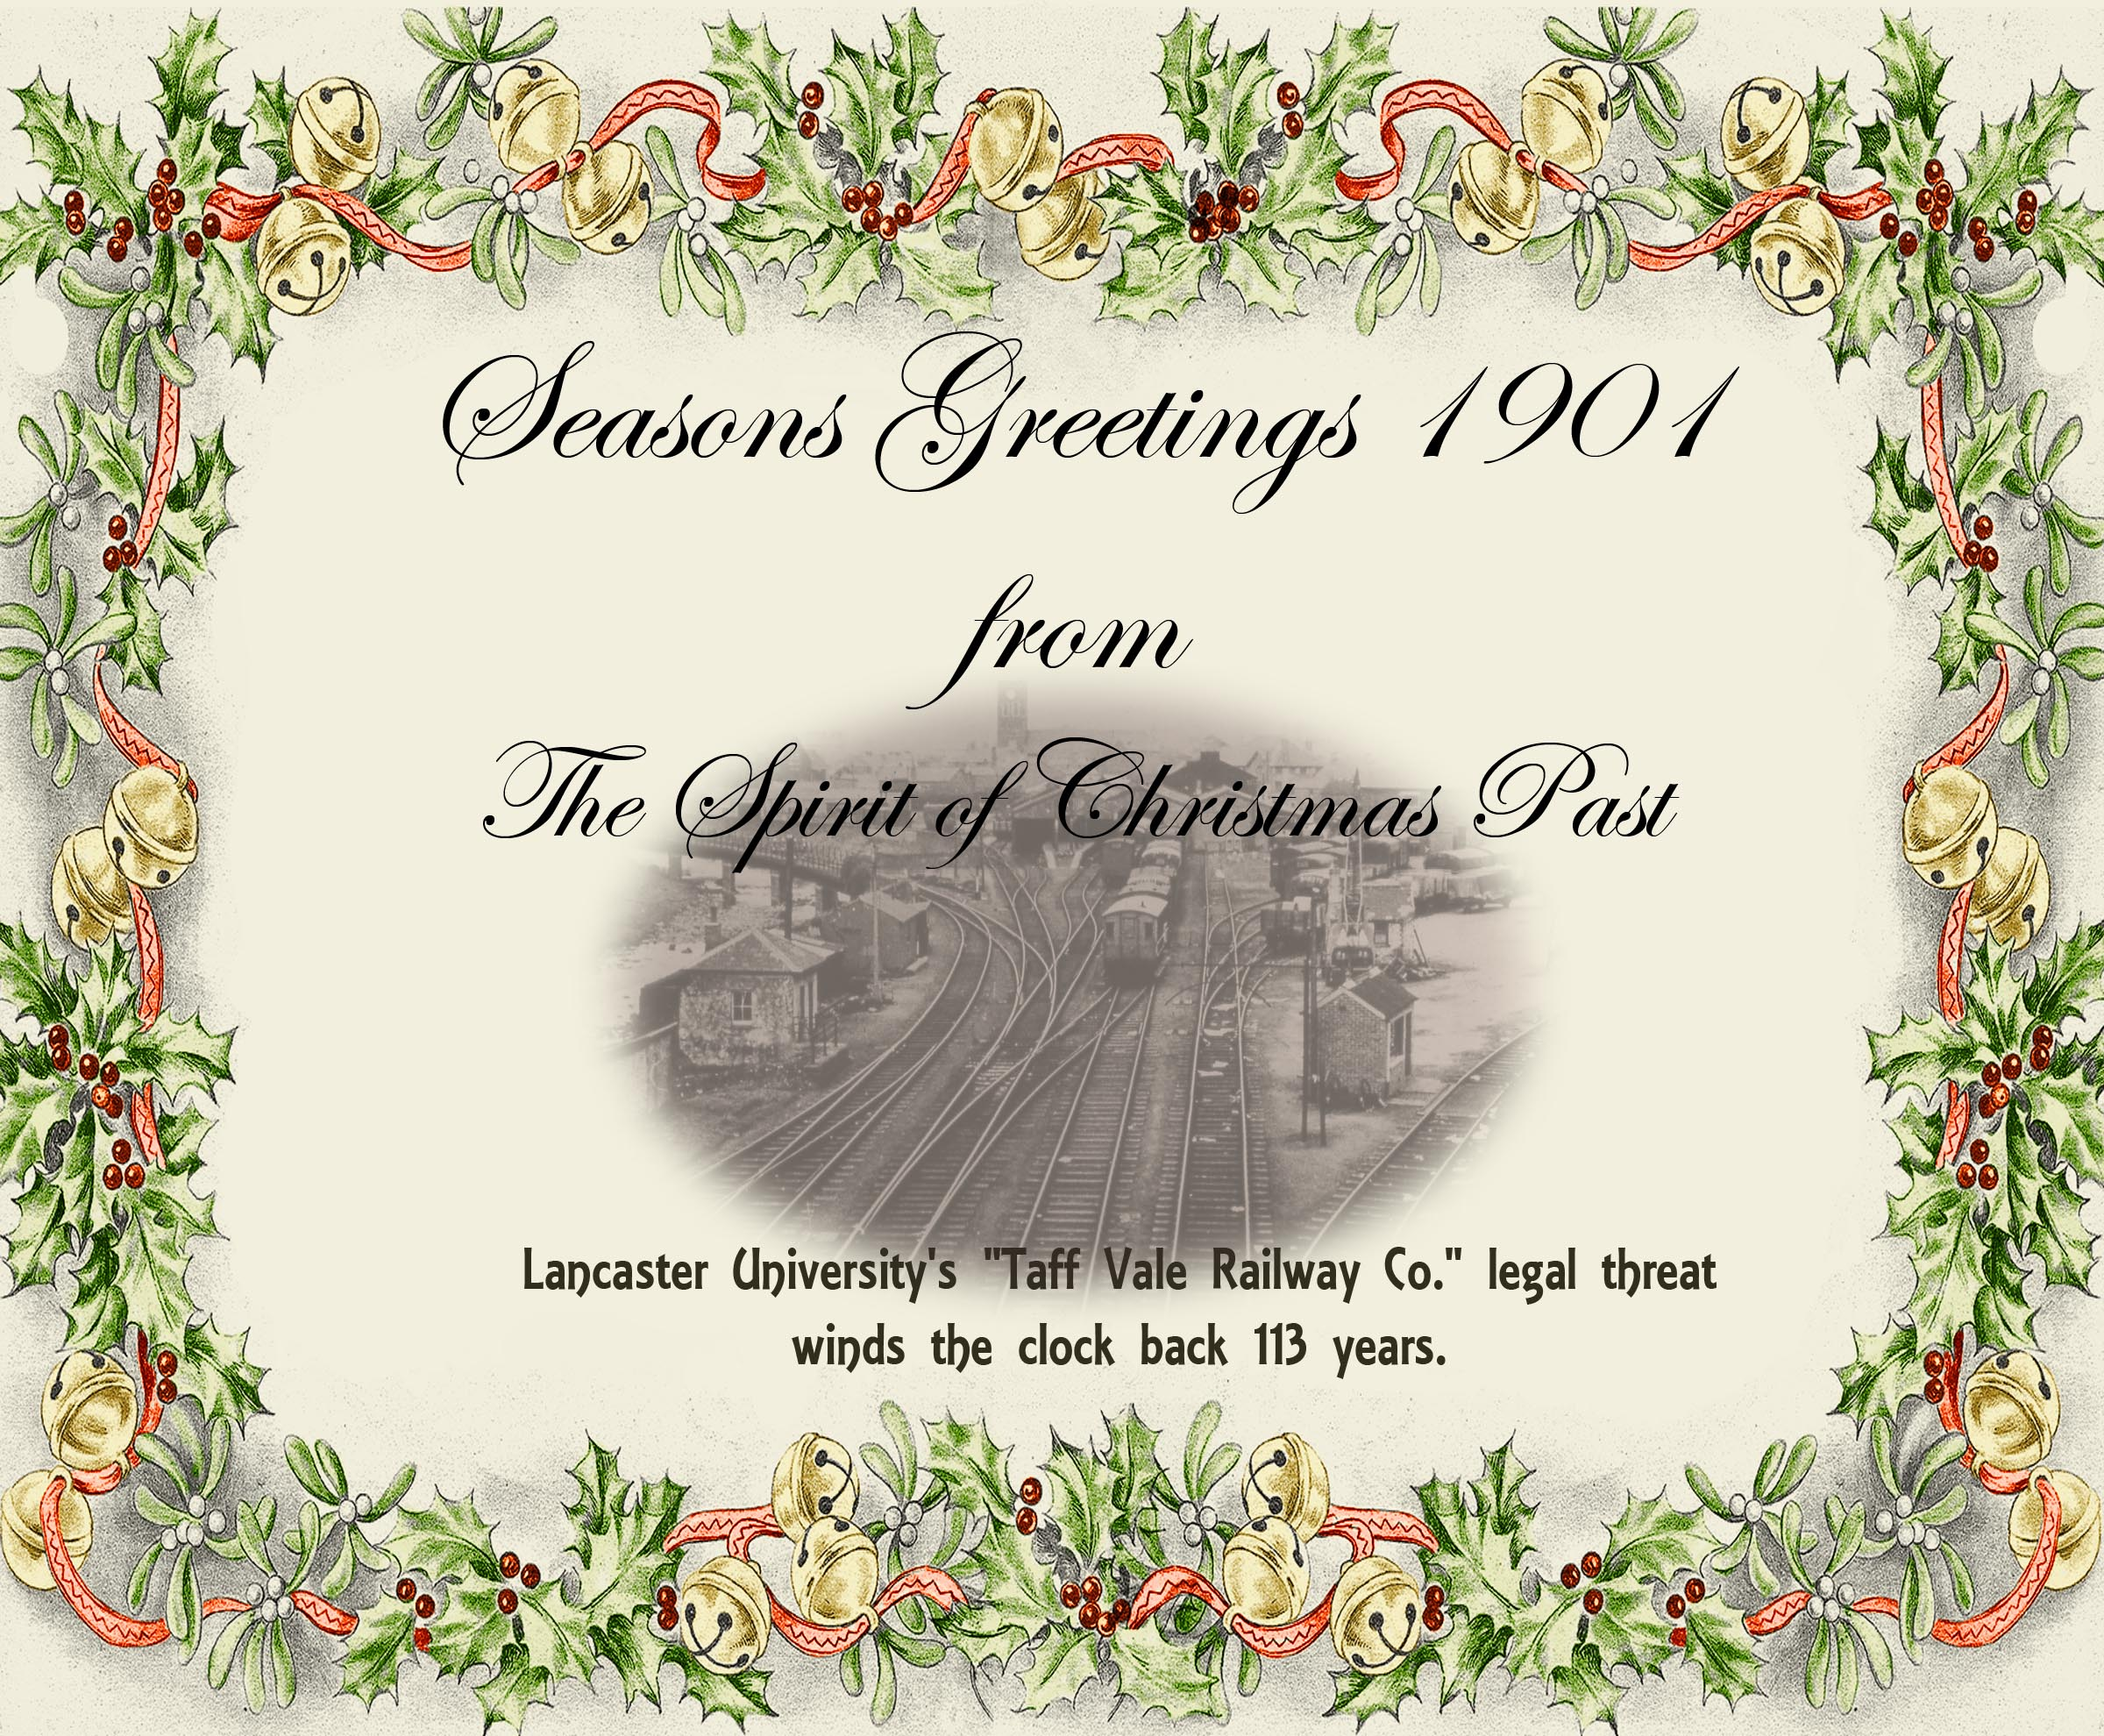 season's greetings image of a rail yard bordered with decorative holly